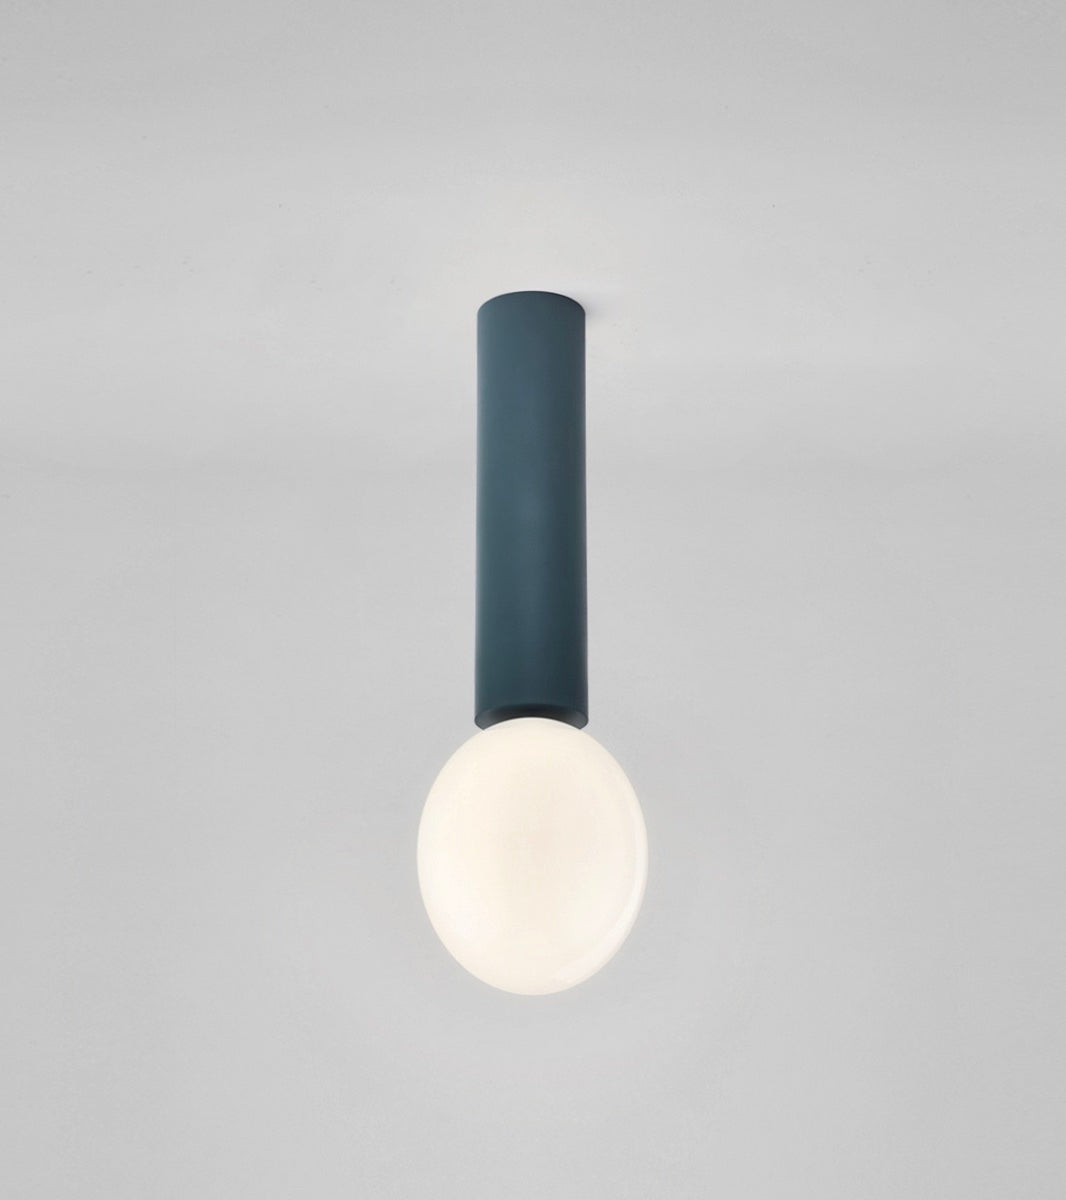 The Philosophical Egg Long Ceiling Rose <br> by Michael Anastassiades